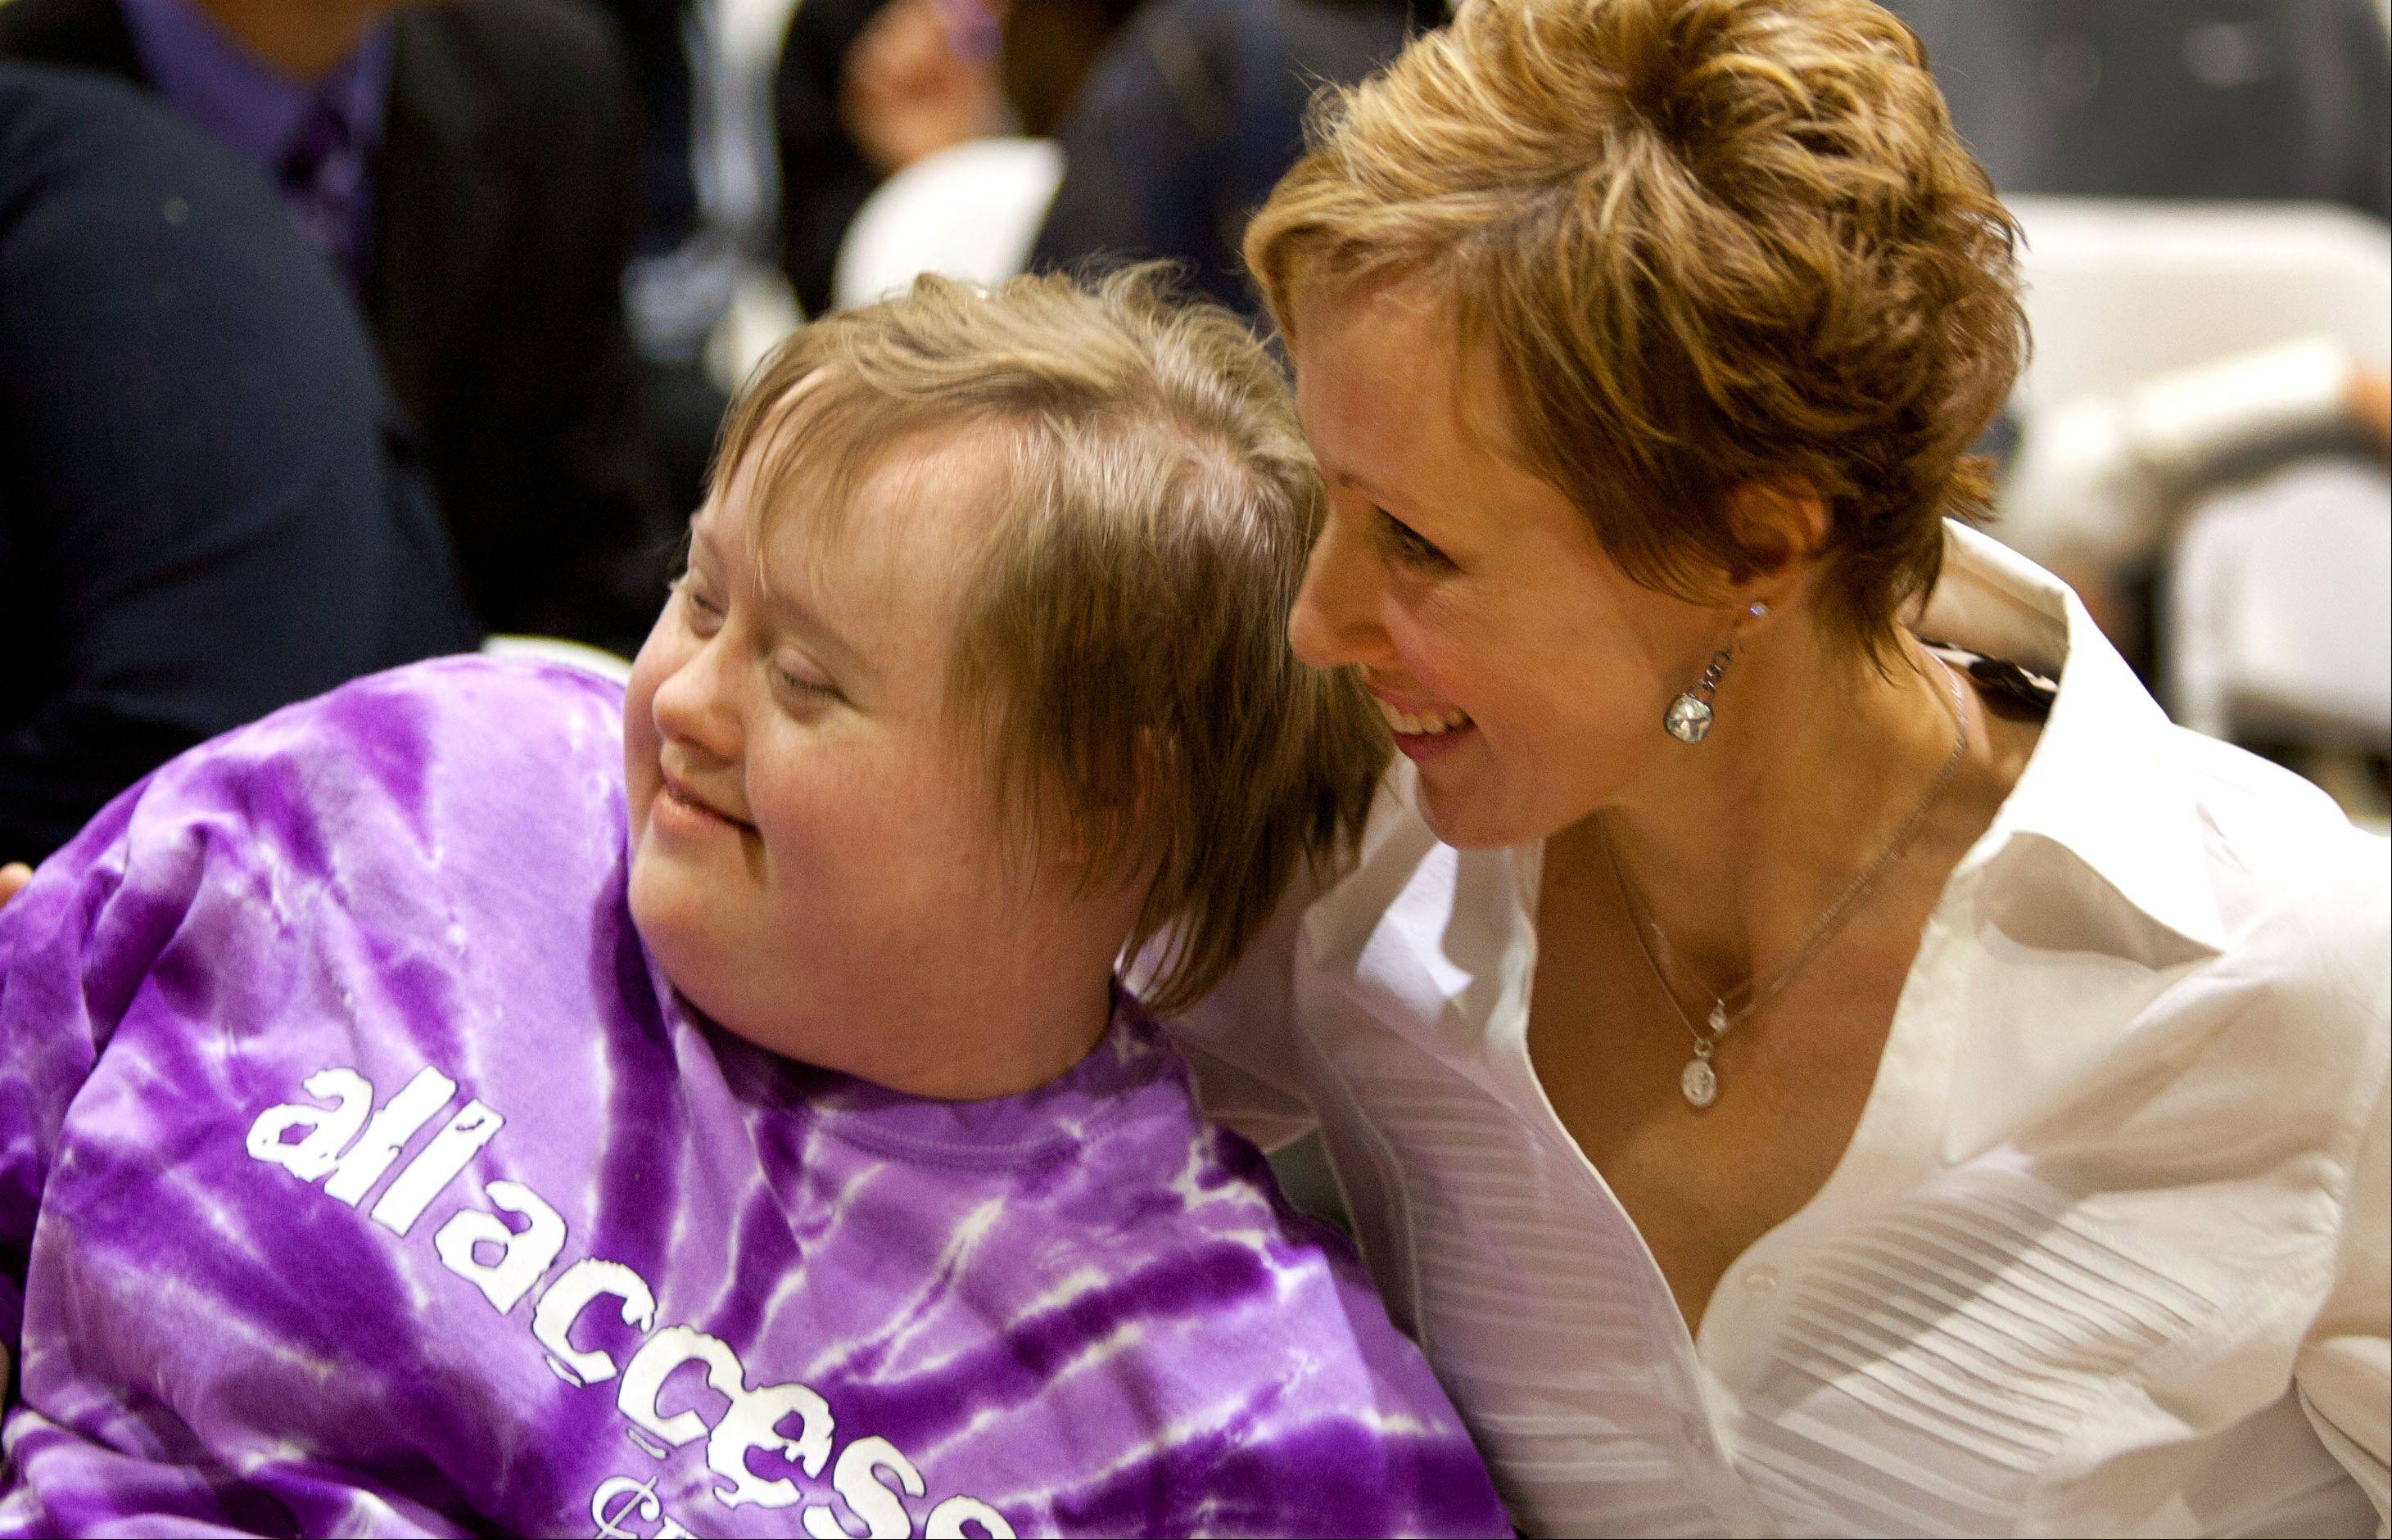 Daniel White/dwhite@dailyherald.com Homecoming queen Anne Wagner, who has Down syndrome relaxes with her mom Amy Wagner before an assembly at Downers Grove North High School.